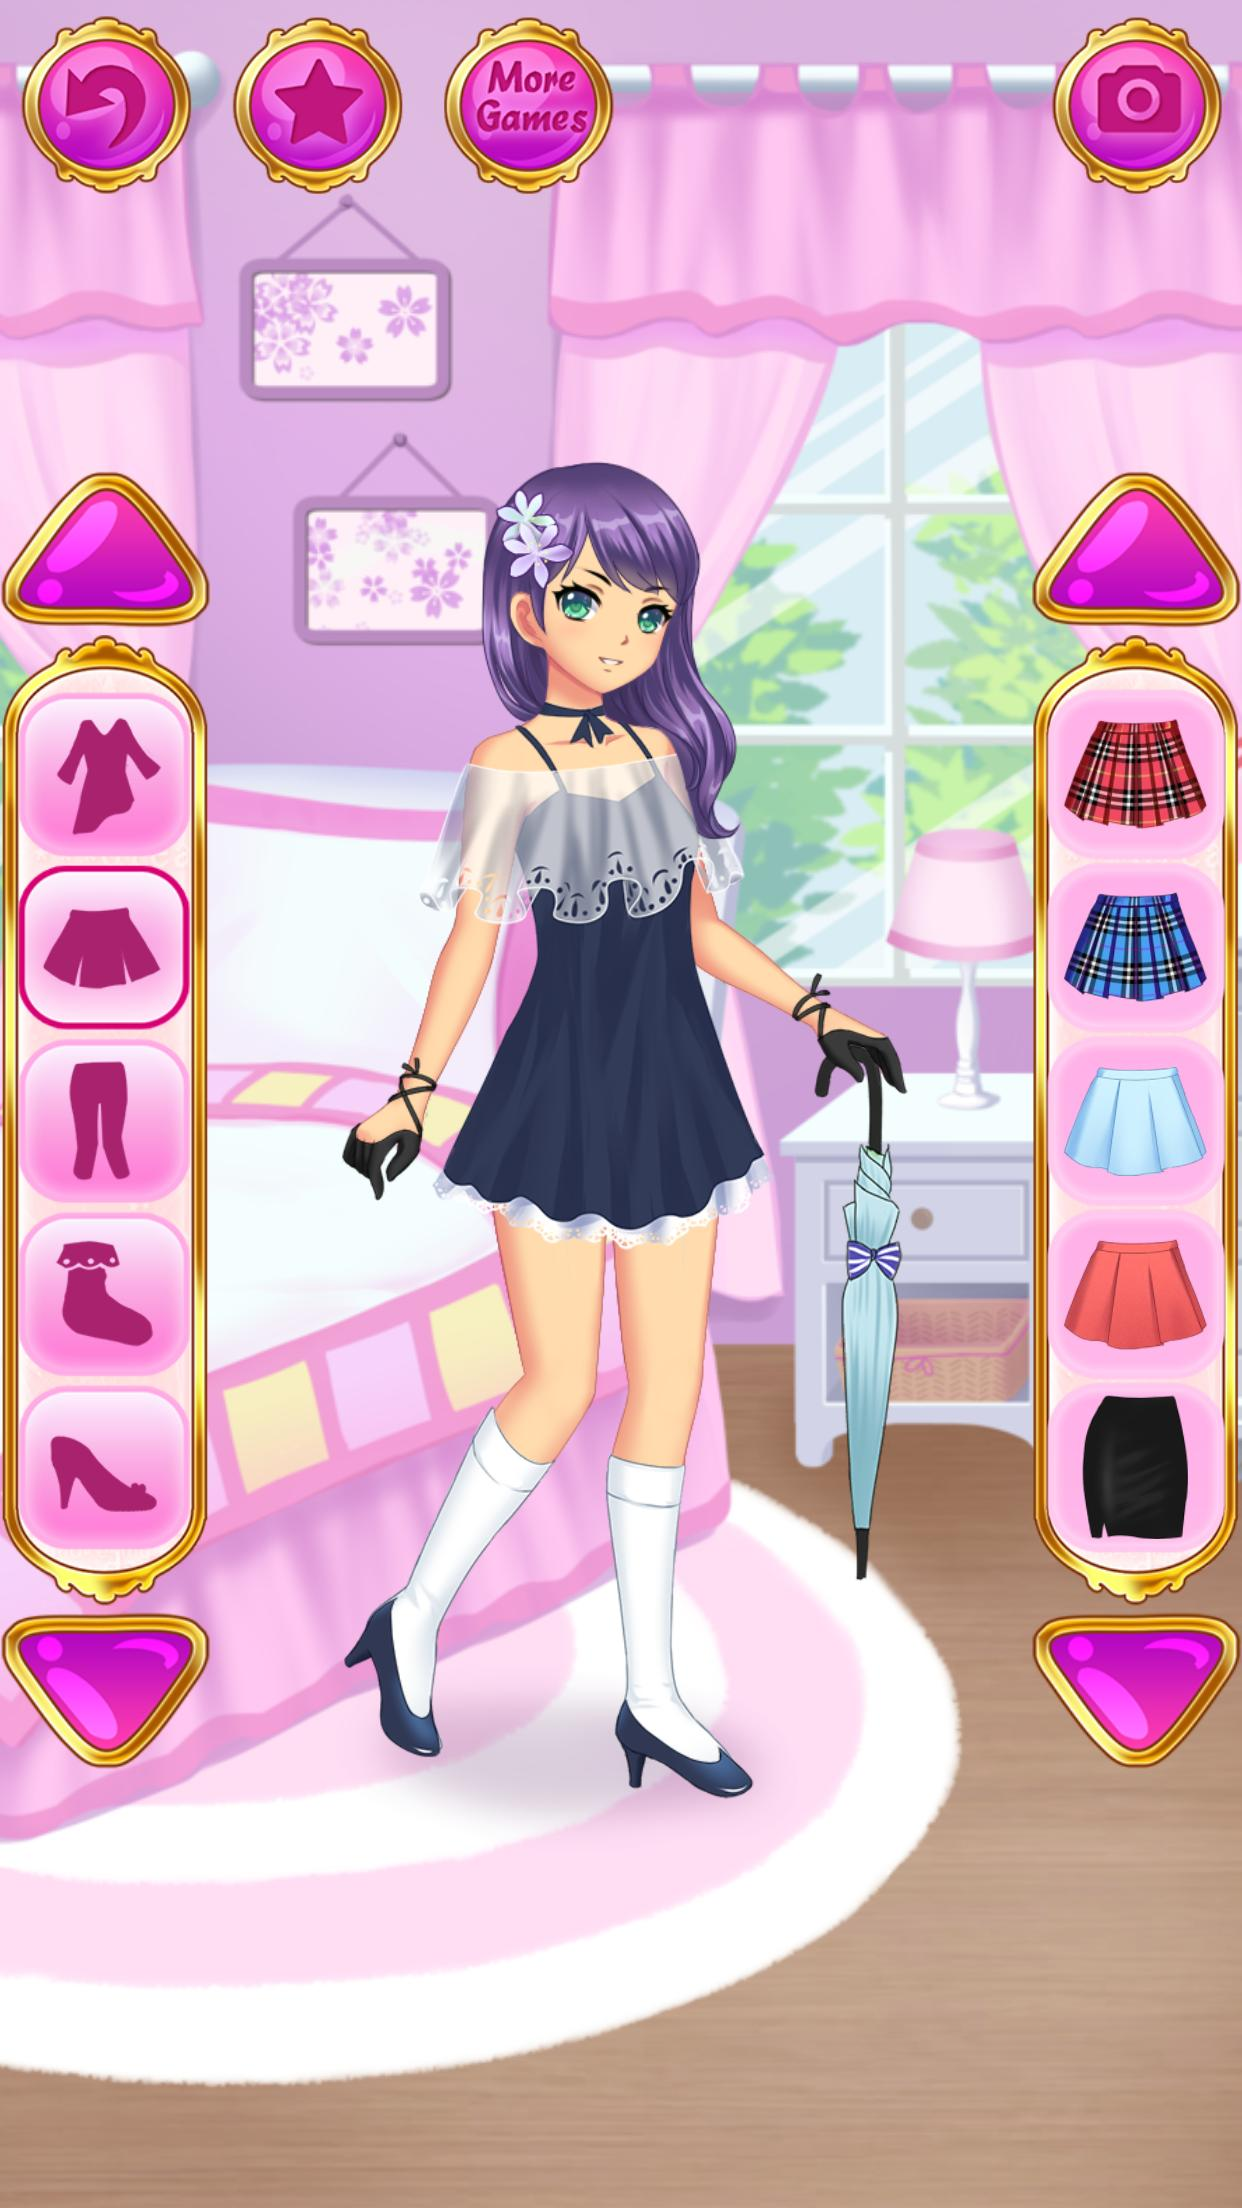 App Juego Porno Hentai Para Android anime dress up for android - apk download